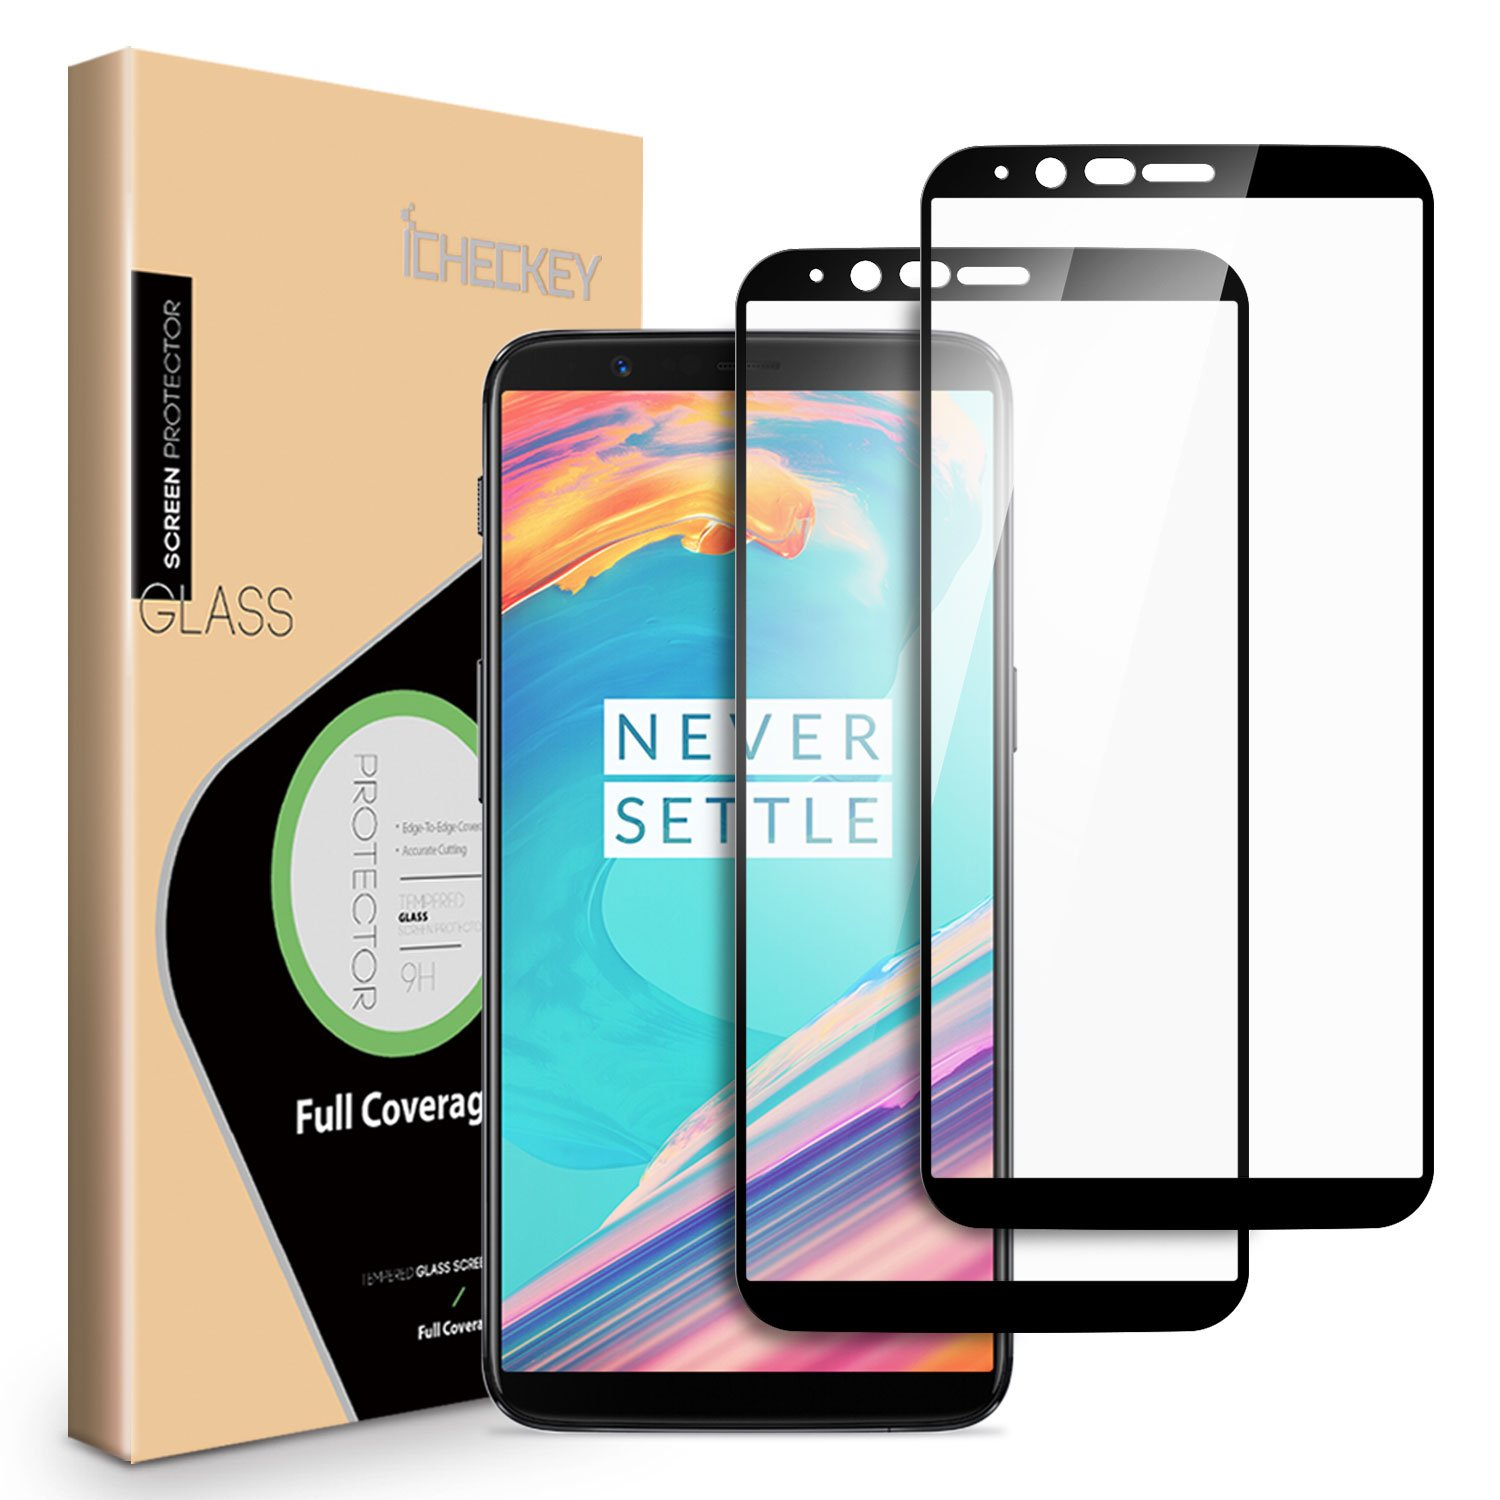 1b8c51685560fd Amazon.com: OnePlus 5T Screen Protector - [2 Pack] ICHECKEY [Full Adhesive]  [2.5D Full Coverage ] Tempered Glass Screen Cover Shield for OnePlus5T -  Black: ...